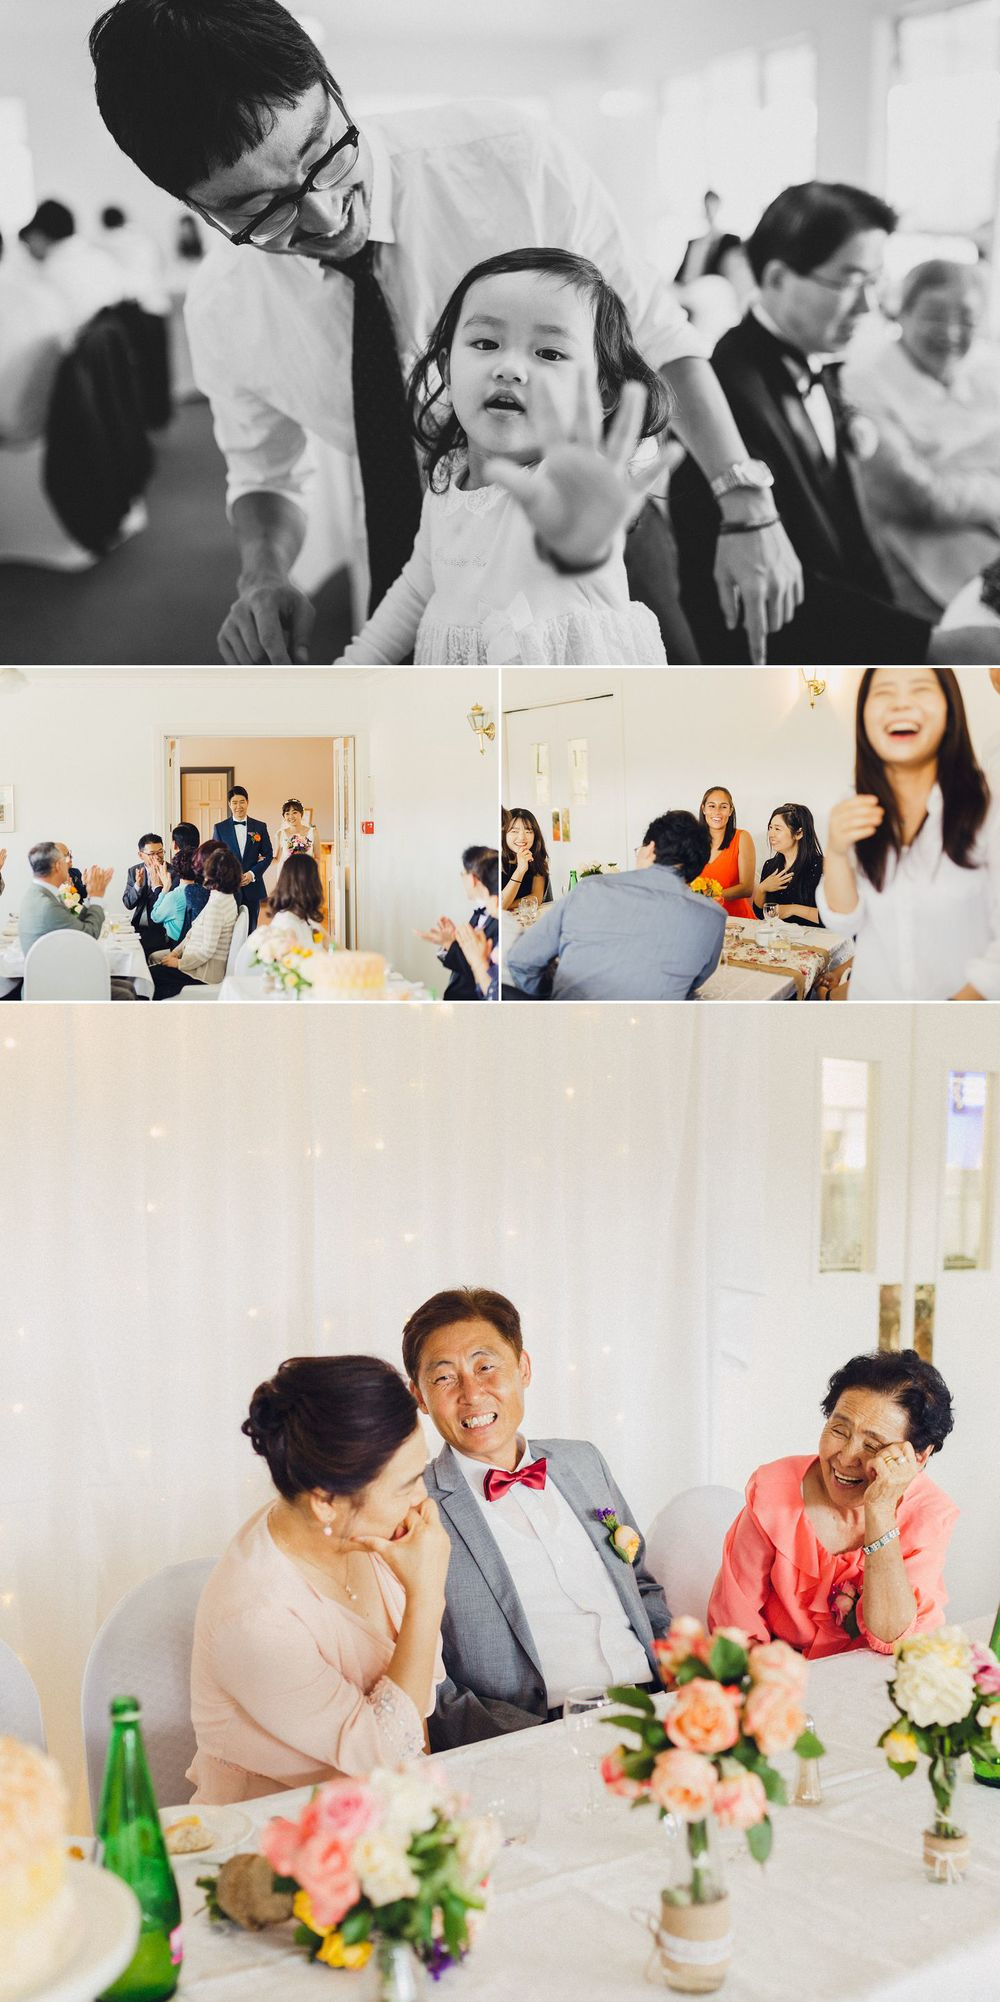 Candid Wedding Photography of Guests Laughing